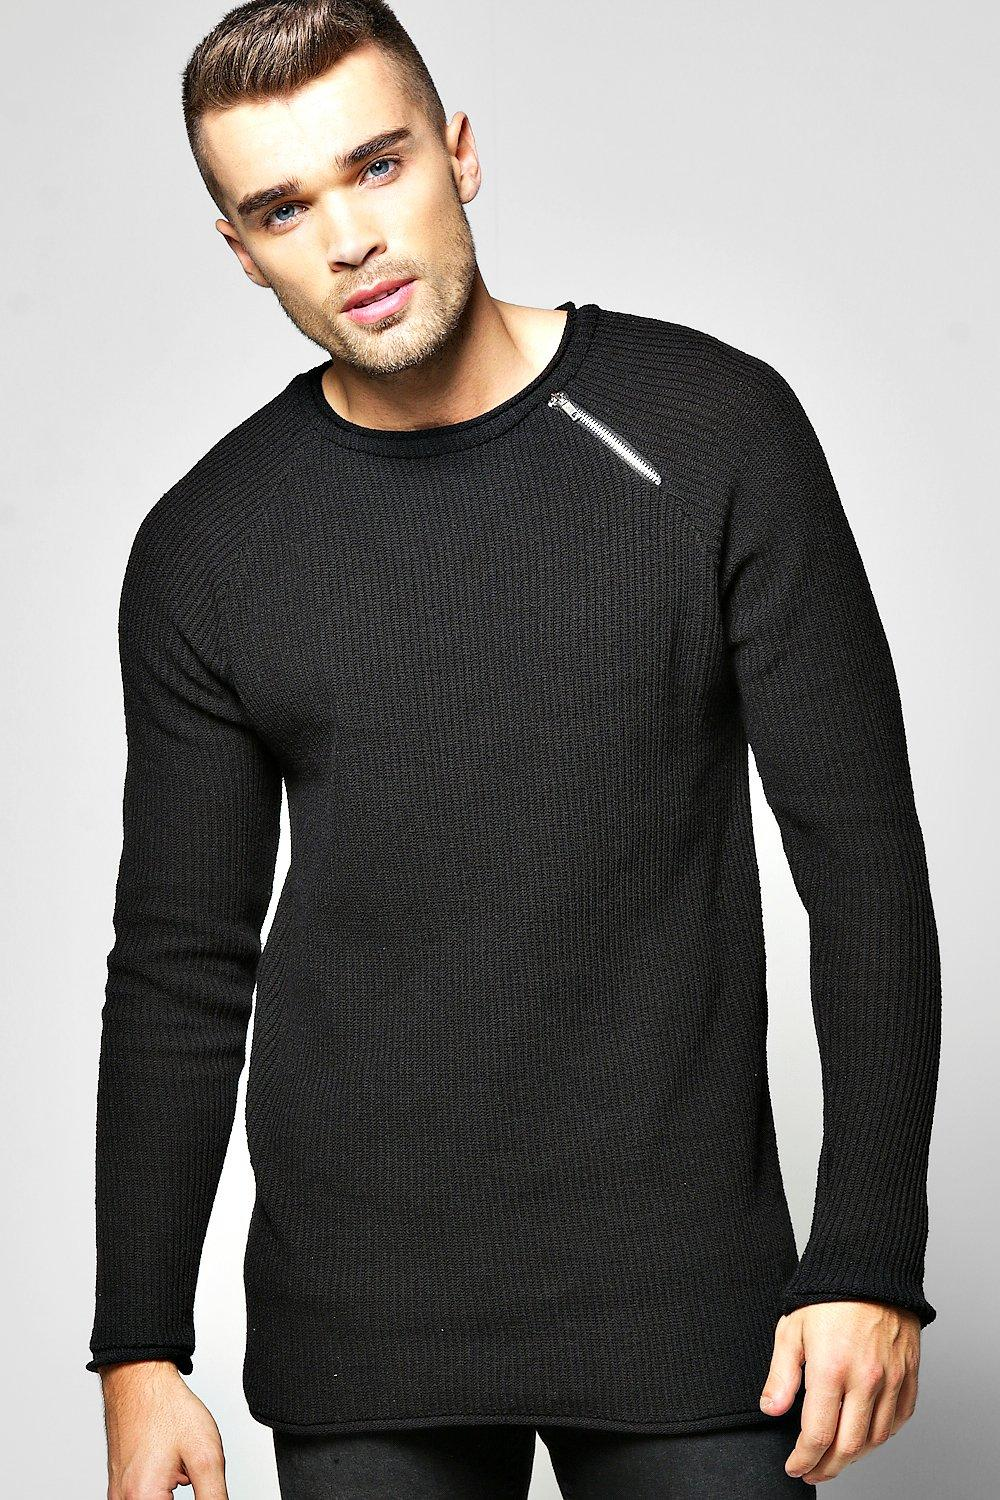 Assymetric Zip Front Neckline Knit Sweater